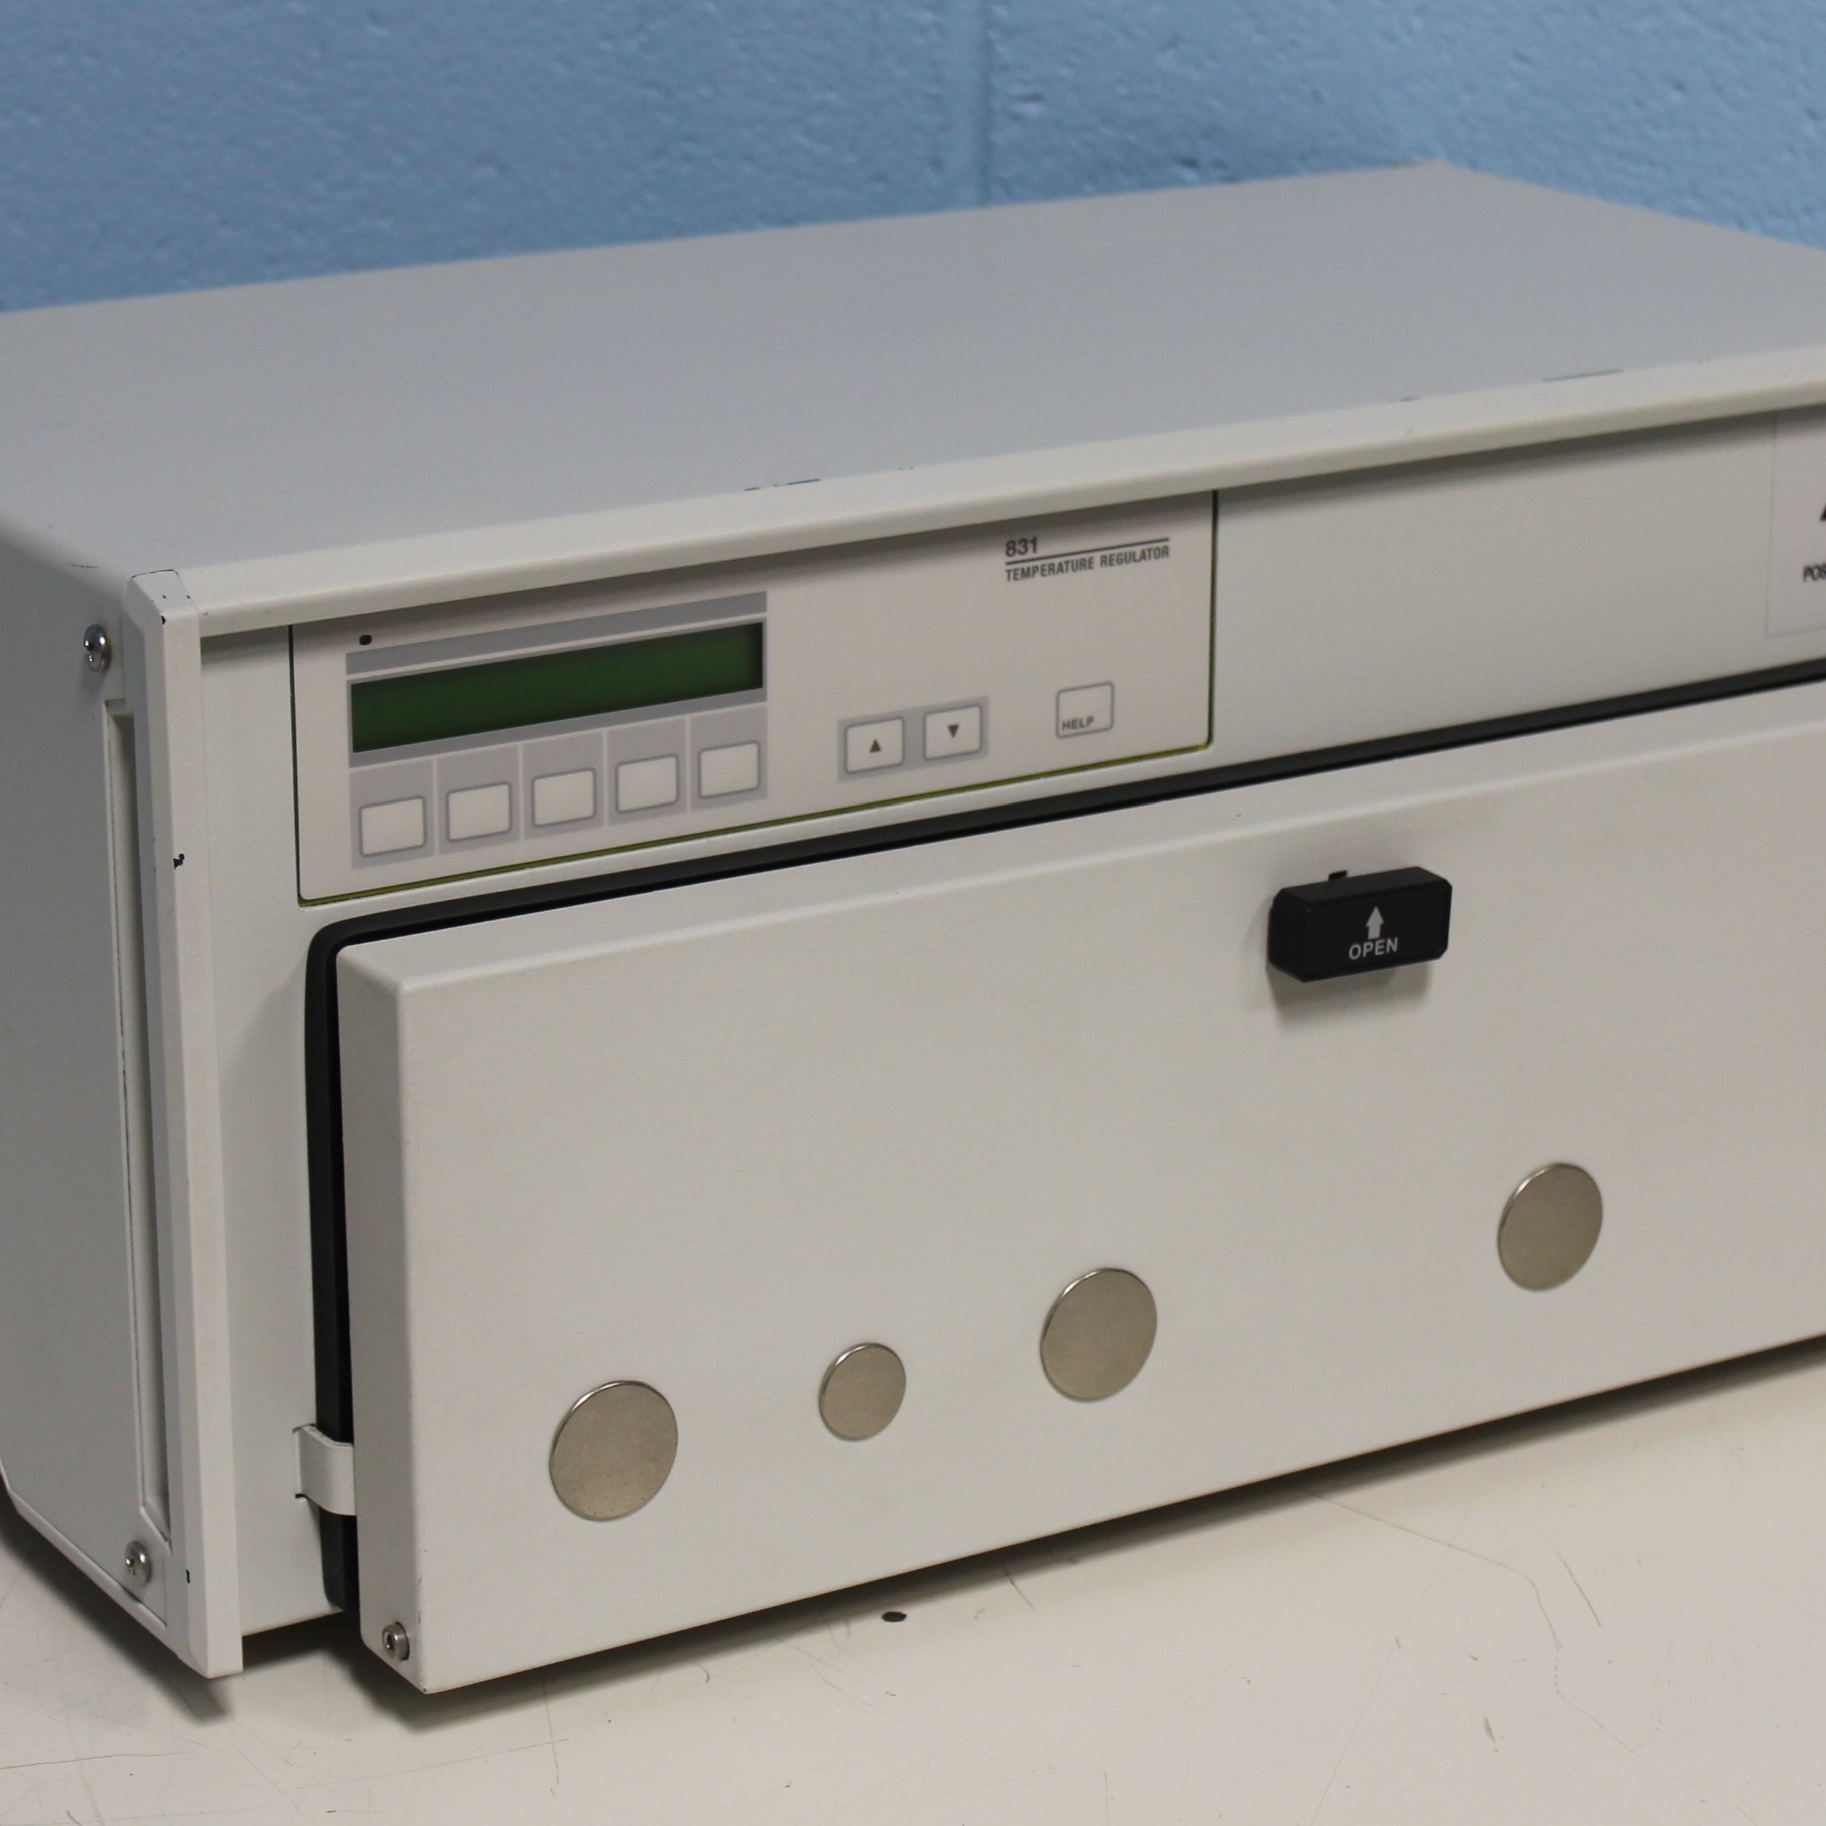 Gilson 831 Temperature Regulator Image